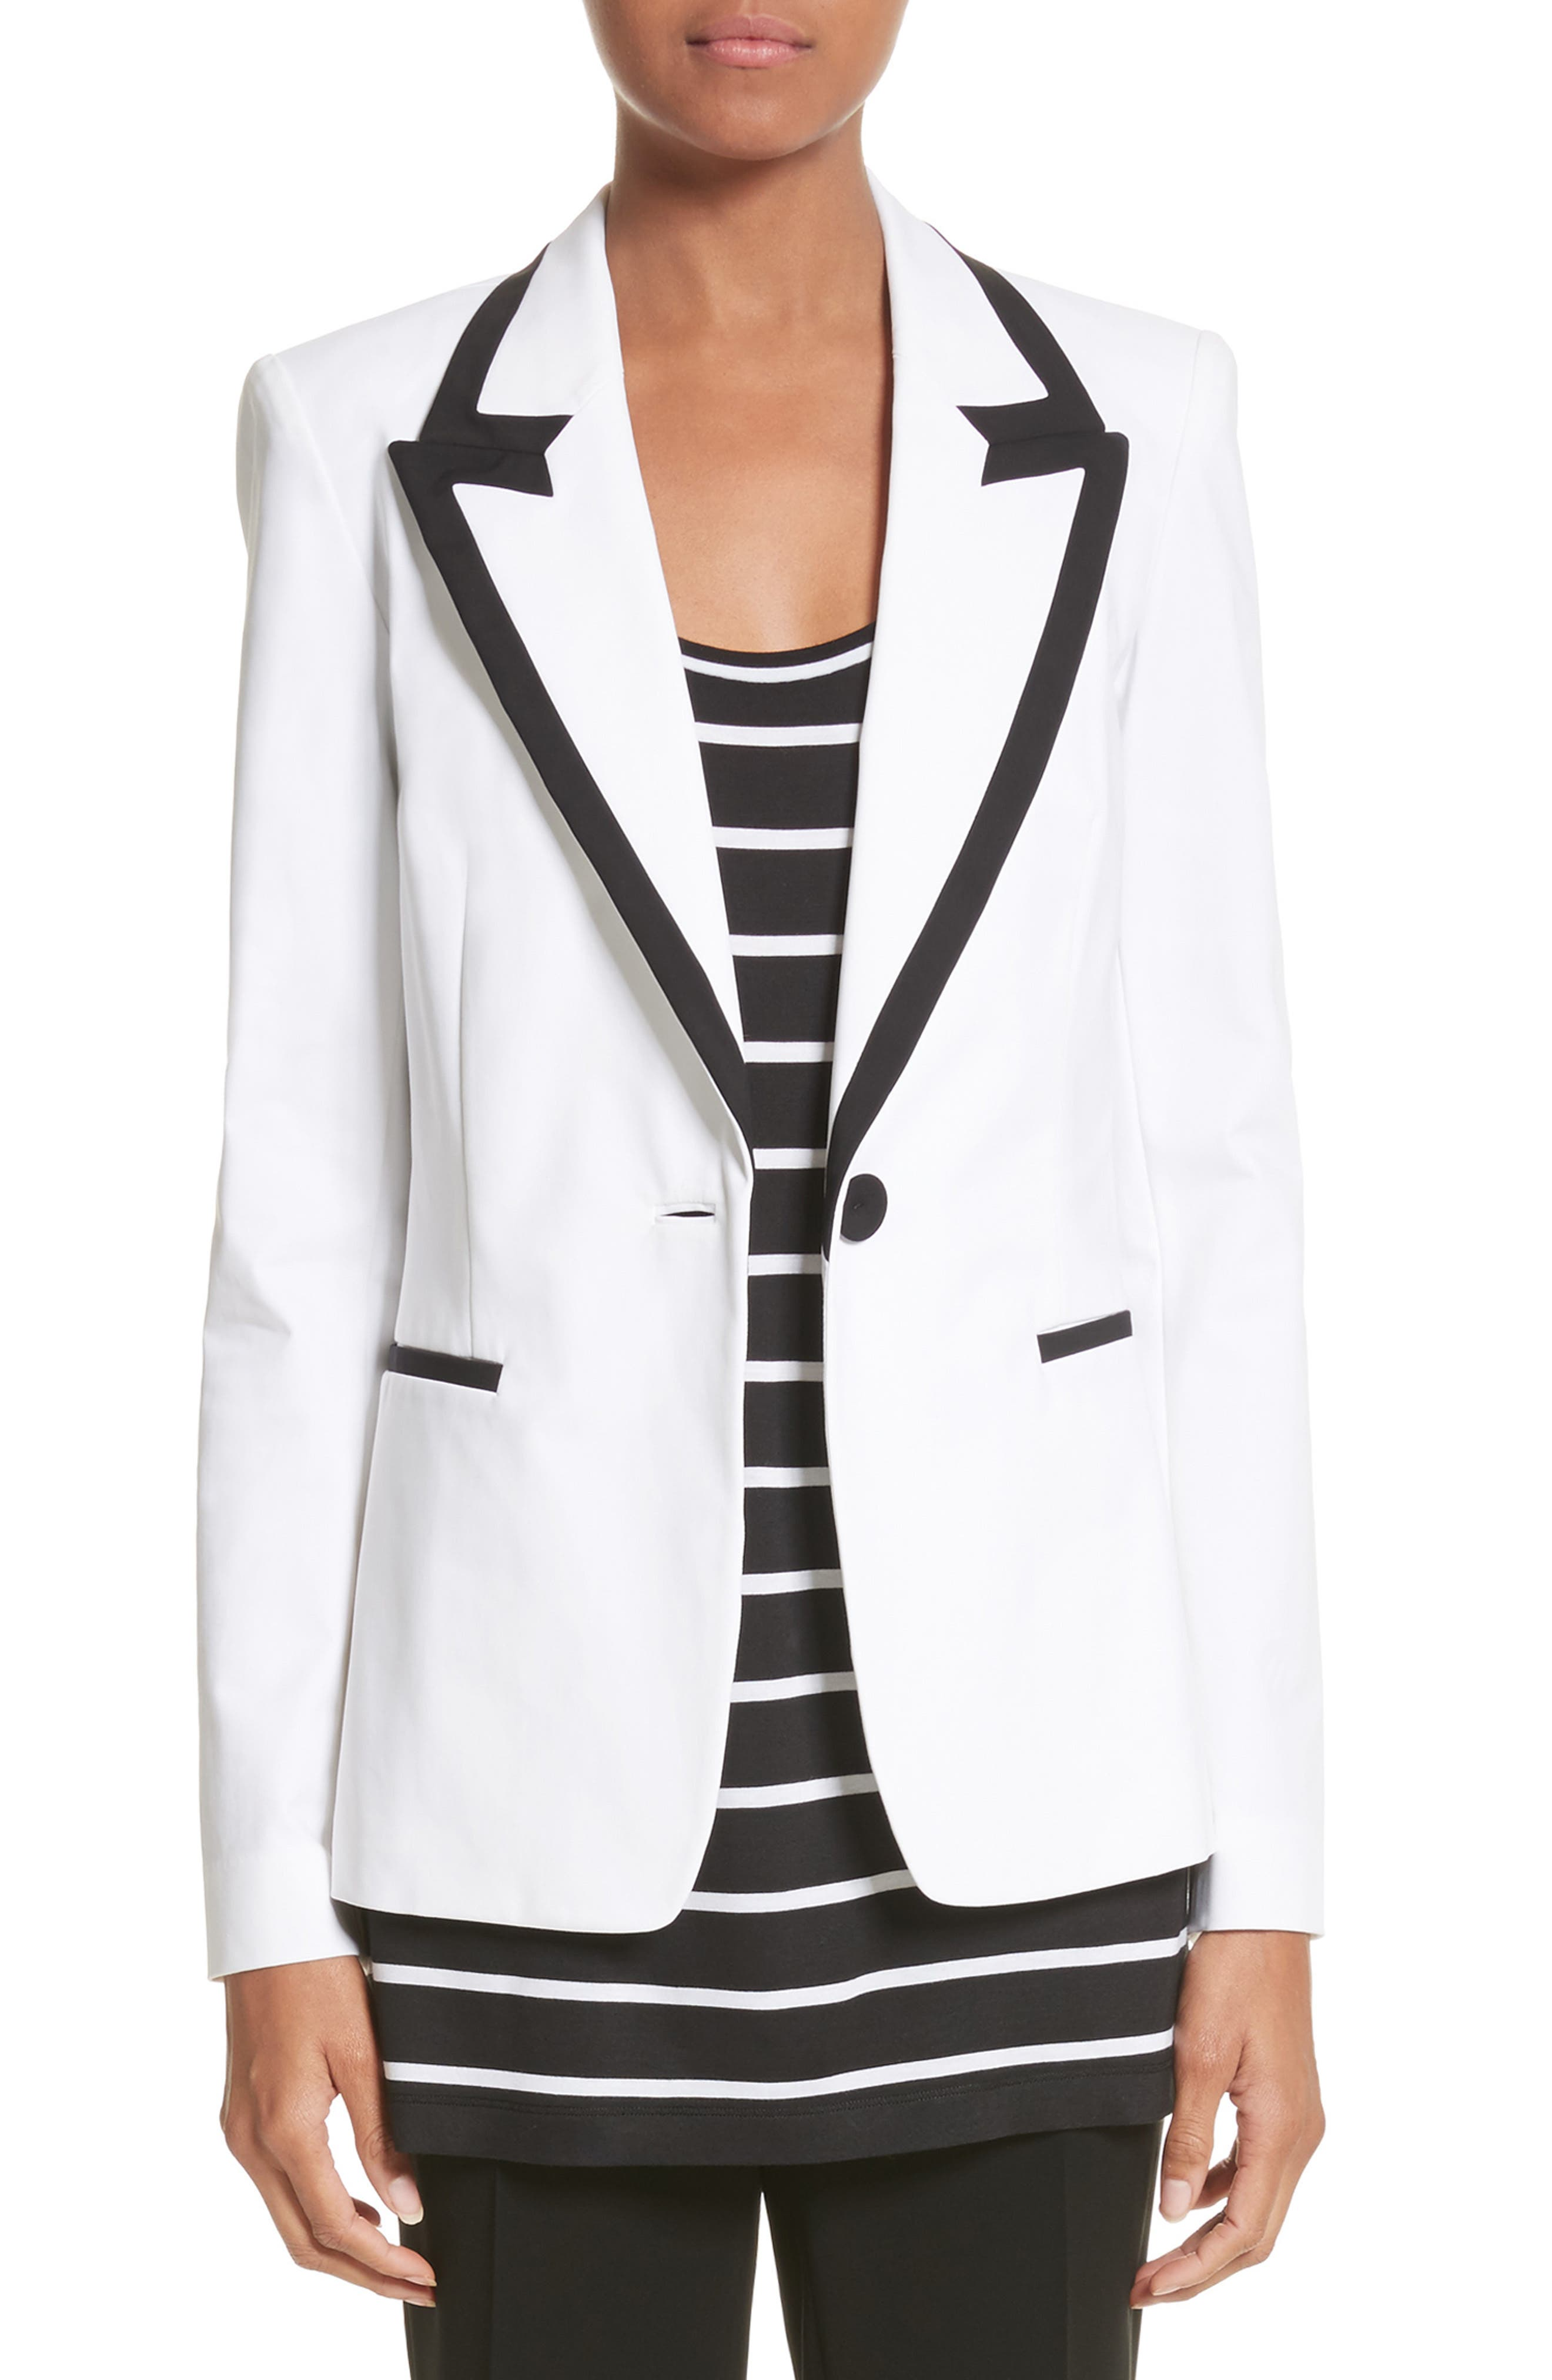 Briley Cotton Blend Blazer,                             Main thumbnail 1, color,                             White